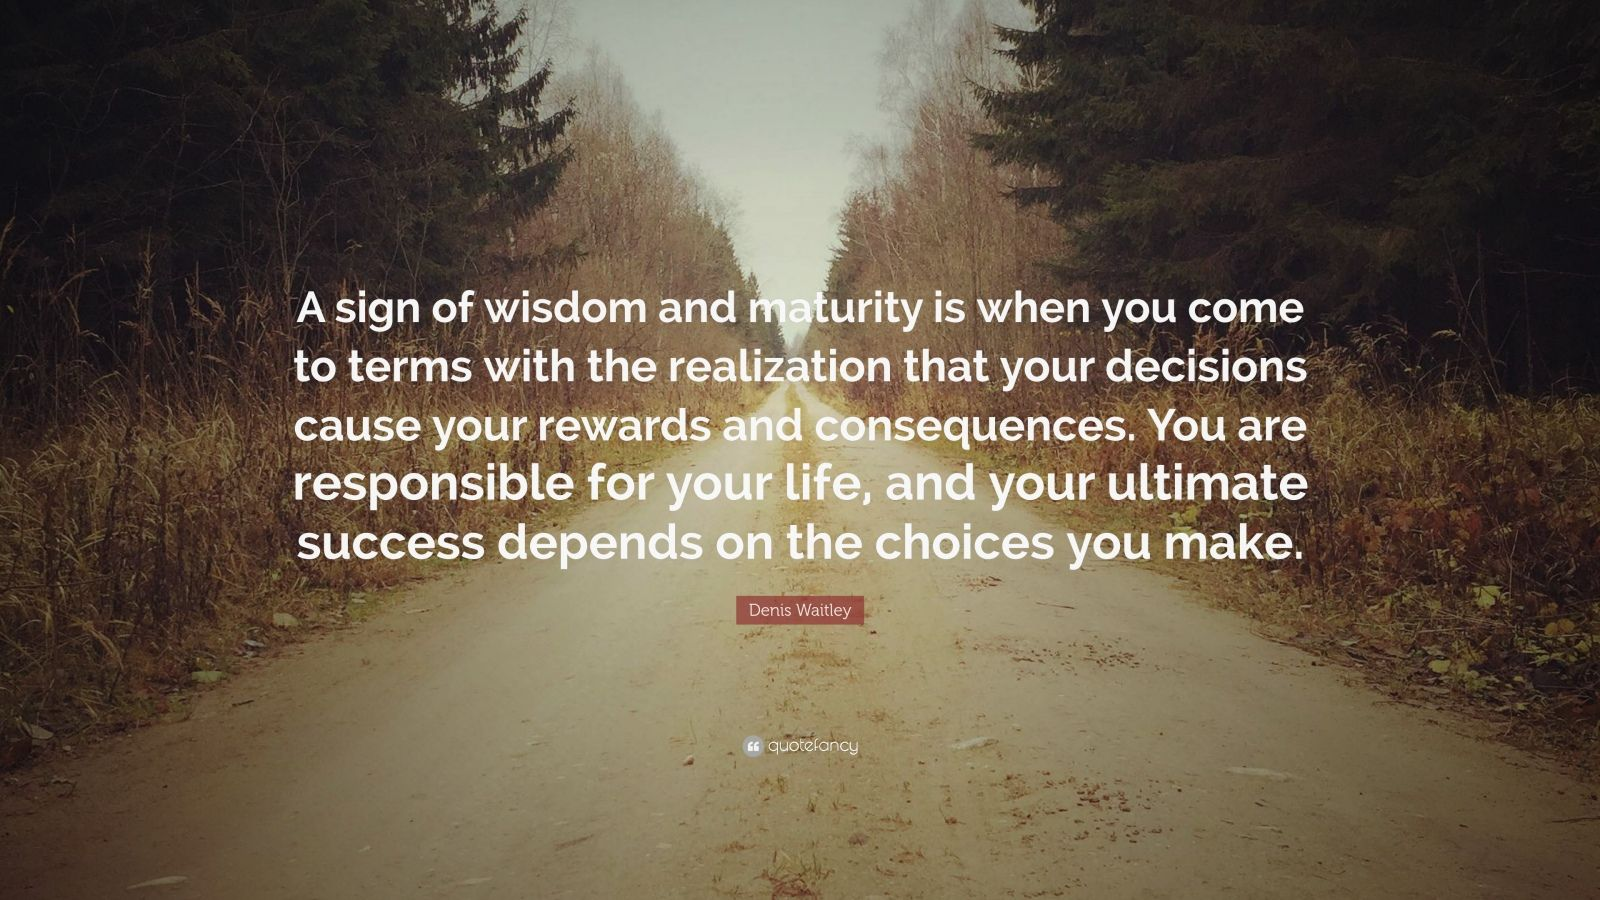 "Denis Waitley Quote: ""A sign of wisdom and maturity is when you come to terms with the realization that your decisions cause your rewards and consequences. You are responsible for your life, and your ultimate success depends on the choices you make."""